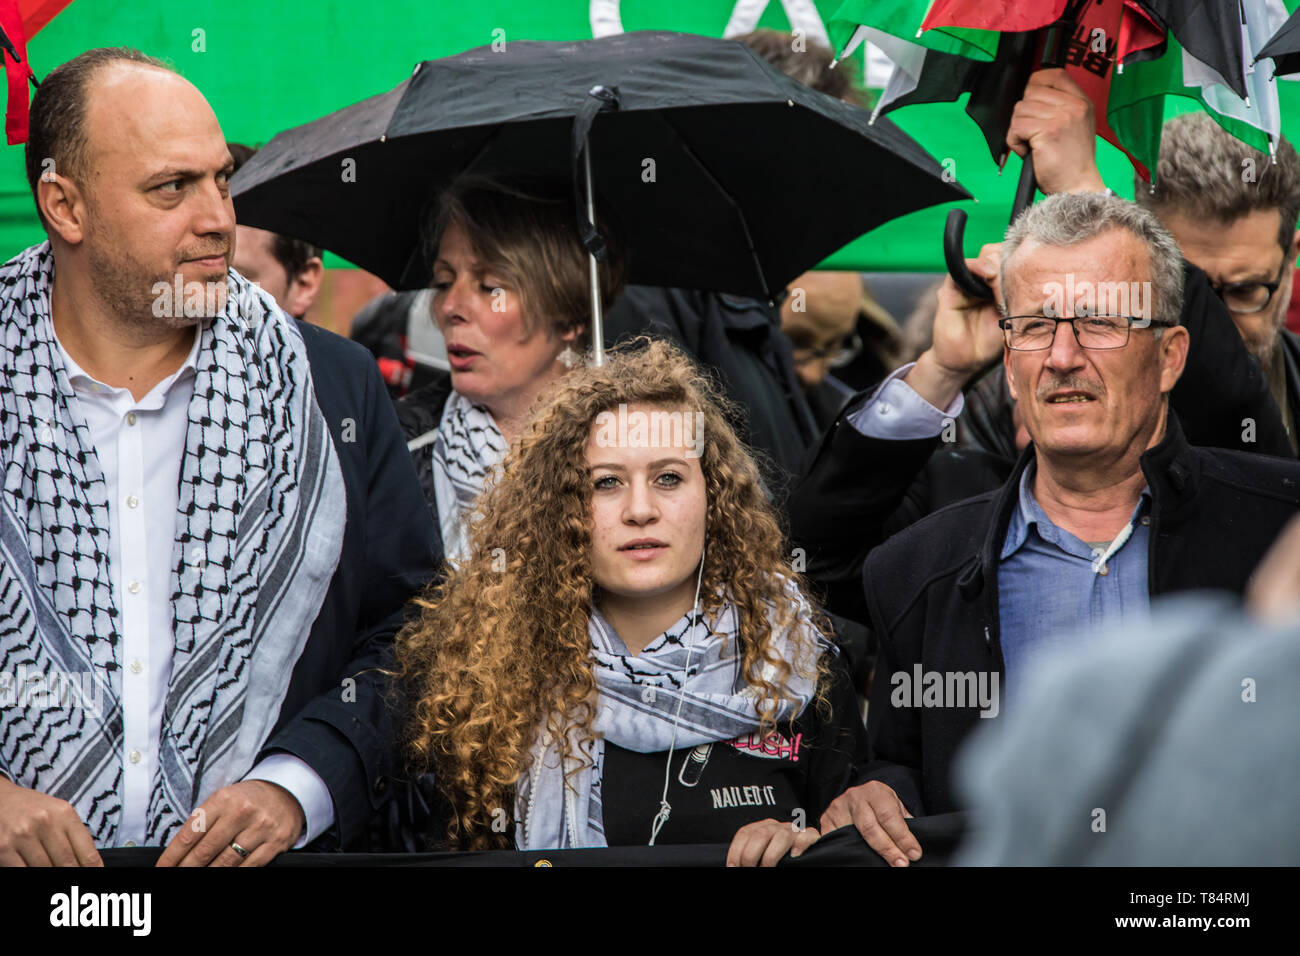 11 May, 2019. London,UK.  Ahed Tamimi joins thousands marching for Palestine in central London in a demonstration organised by the Palestinian Solidarity Campaign. David Rowe/ Alamy Live News - Stock Image